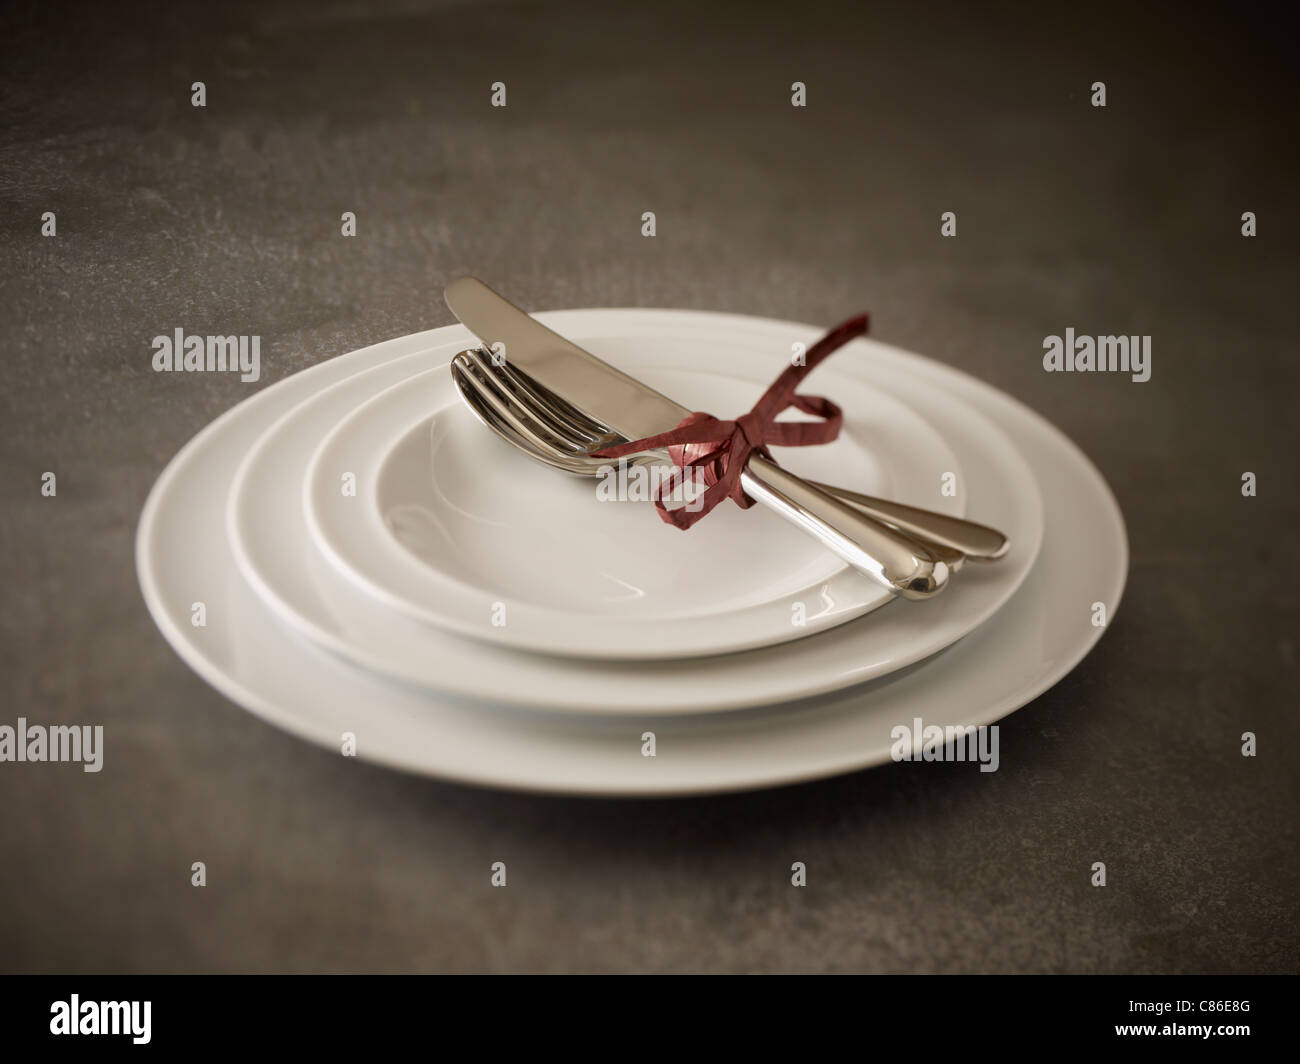 Plate stack/ Place setting - Stock Image